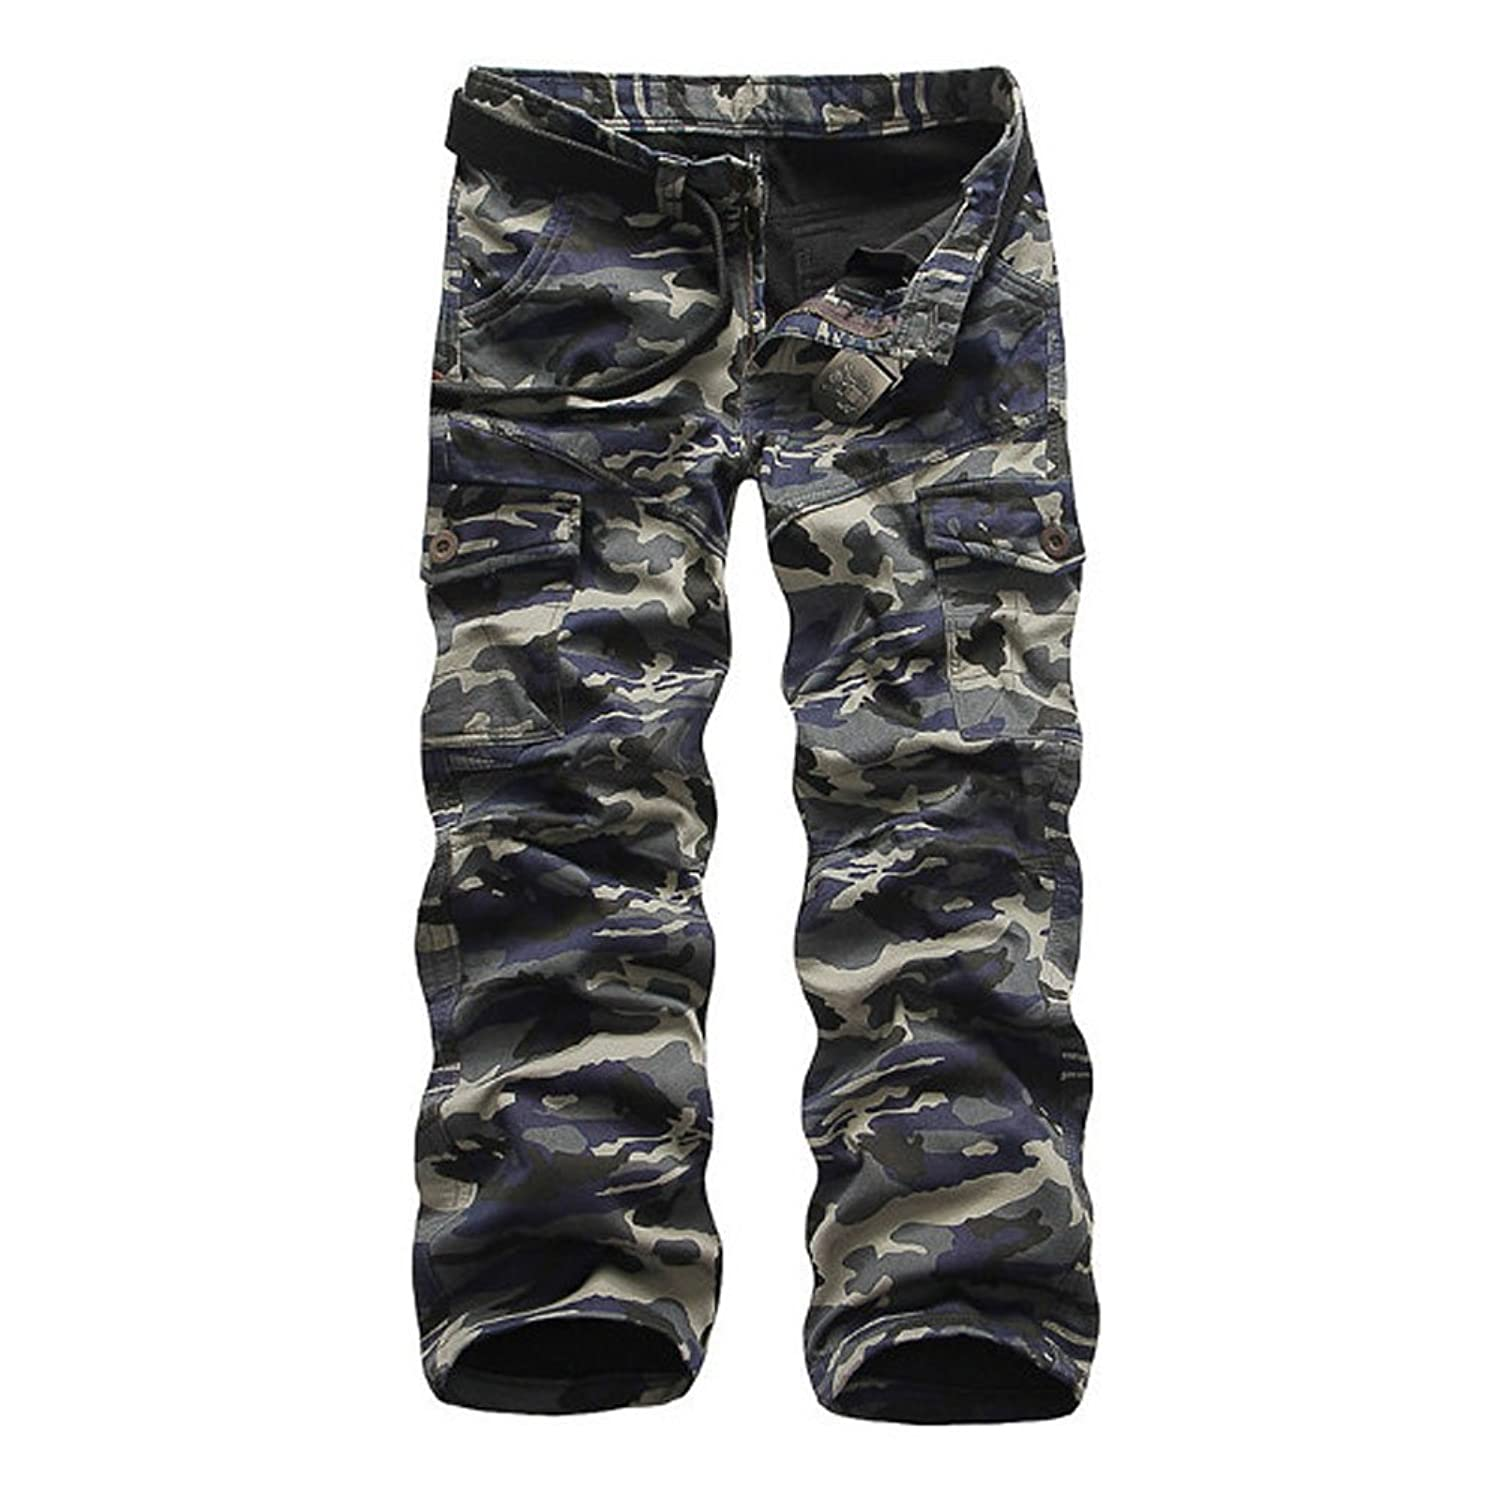 Tourwin Mens Overalls Camouflage Pocket Winter Thick Fashion Cotton Warm Cargo Pants Trousers Outdoor Casual